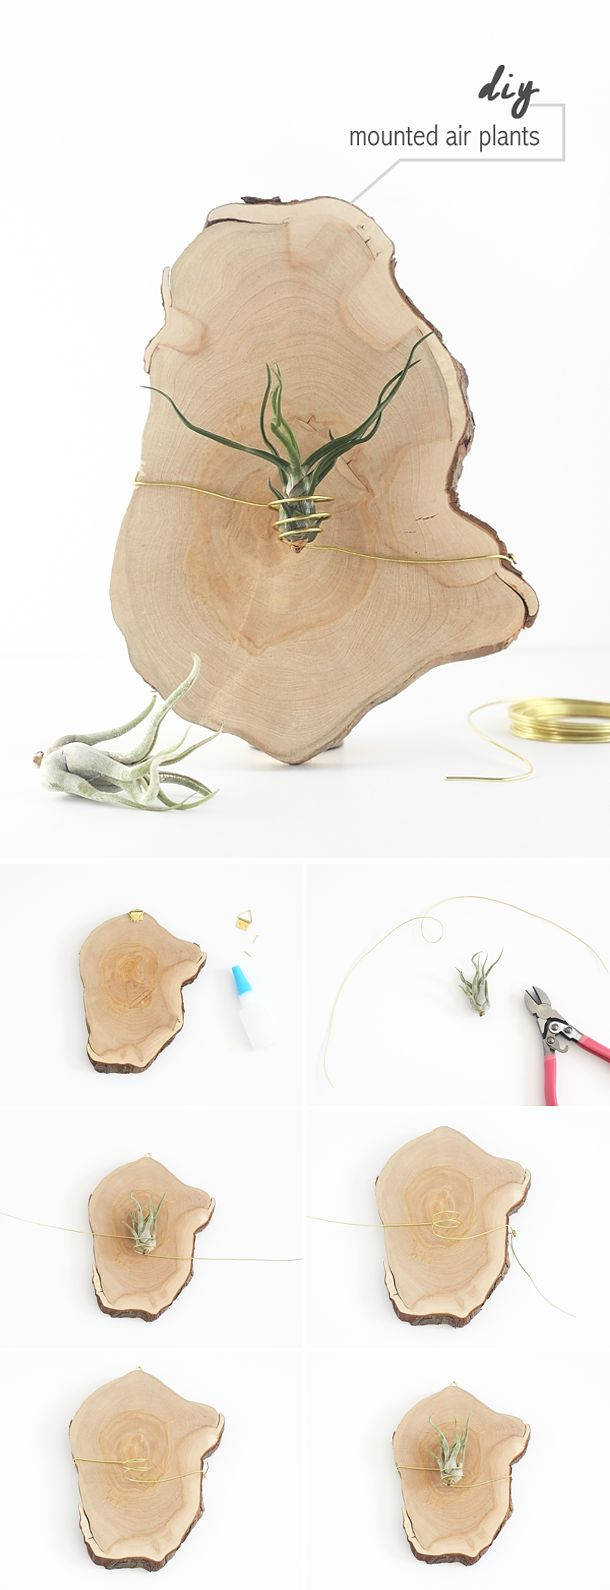 DIY Mounted Air Plants by Idle Hands Awake